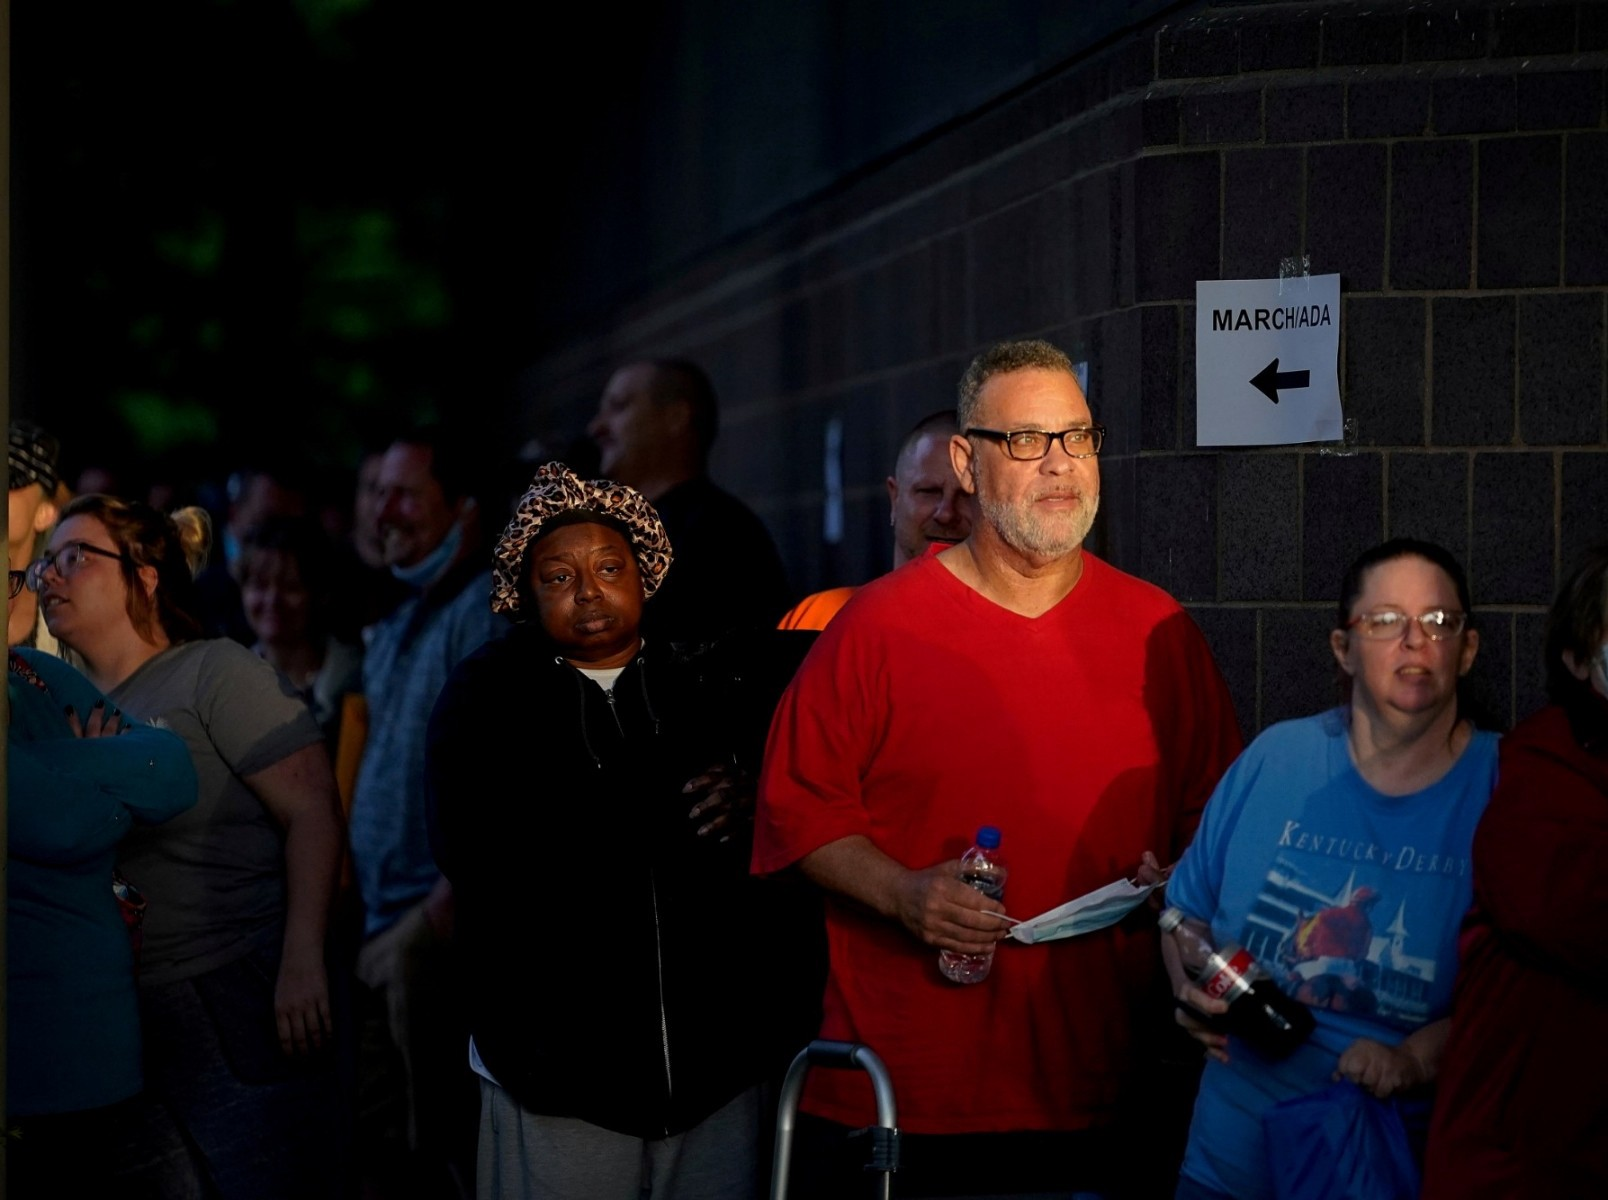 People line up outside the Kentucky Career Center before opening to find assistance with their unemployment claims in Frankfort, Kentucky, June 18, 2020. Photo by Bryan Woolston/Reuters